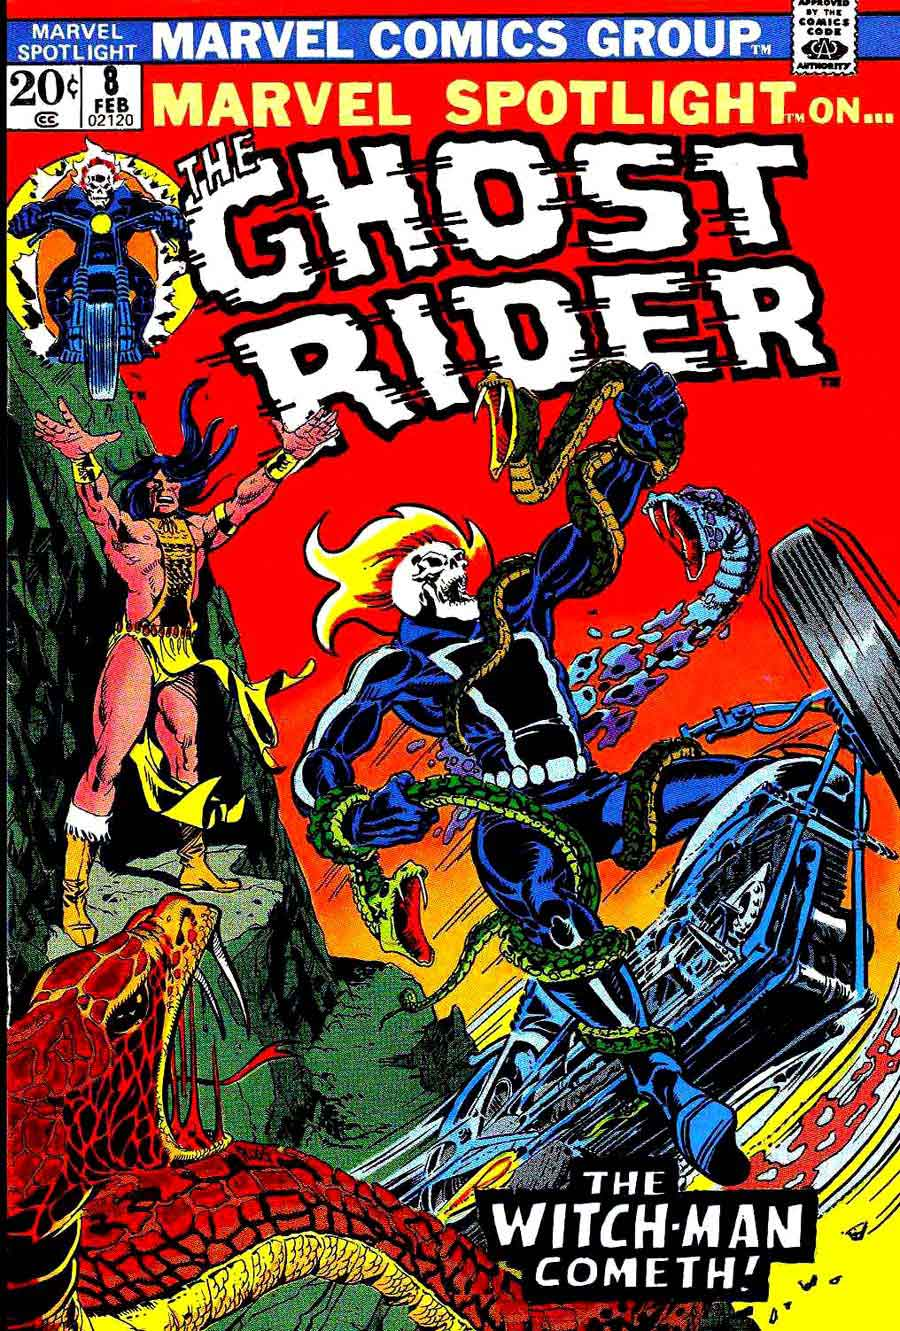 Marvel Spotlight v1 #8 Ghost Rider marvel comic book cover art by Mike Ploog